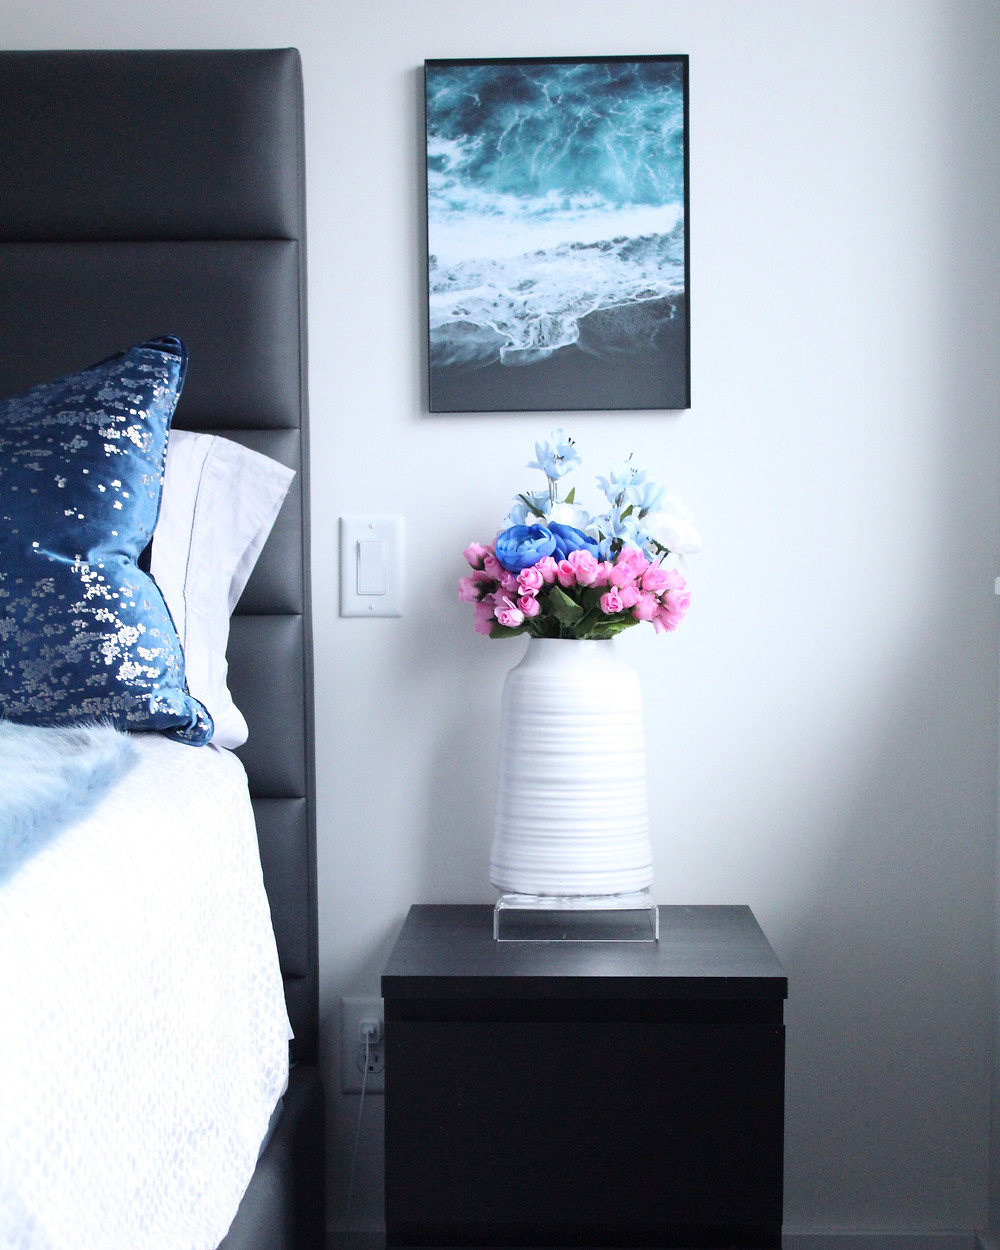 One Room Challenge - Week 3: The Master Bedroom #bghorc #oneroomchallenge #masterbedroommakeover #masterbedroomrefresh